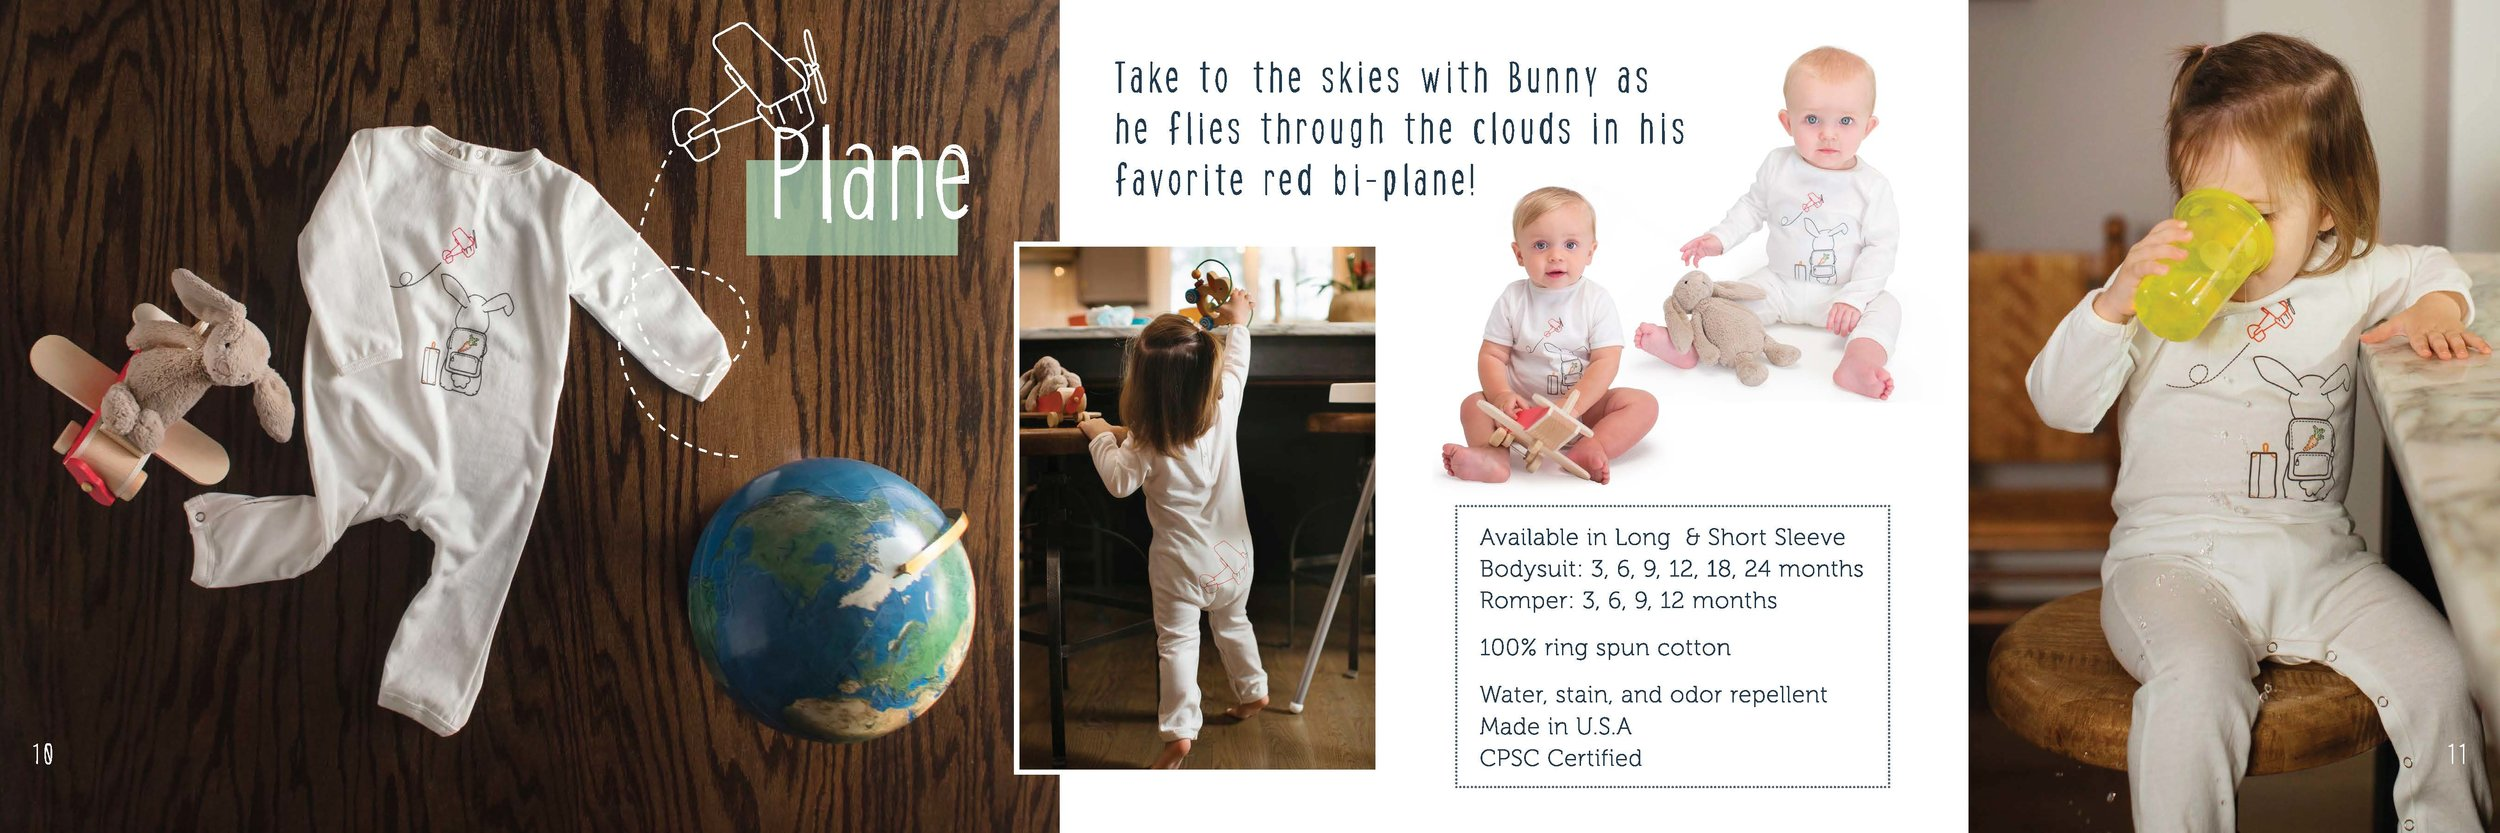 DryBaby_Catalogue_Page_06.jpg